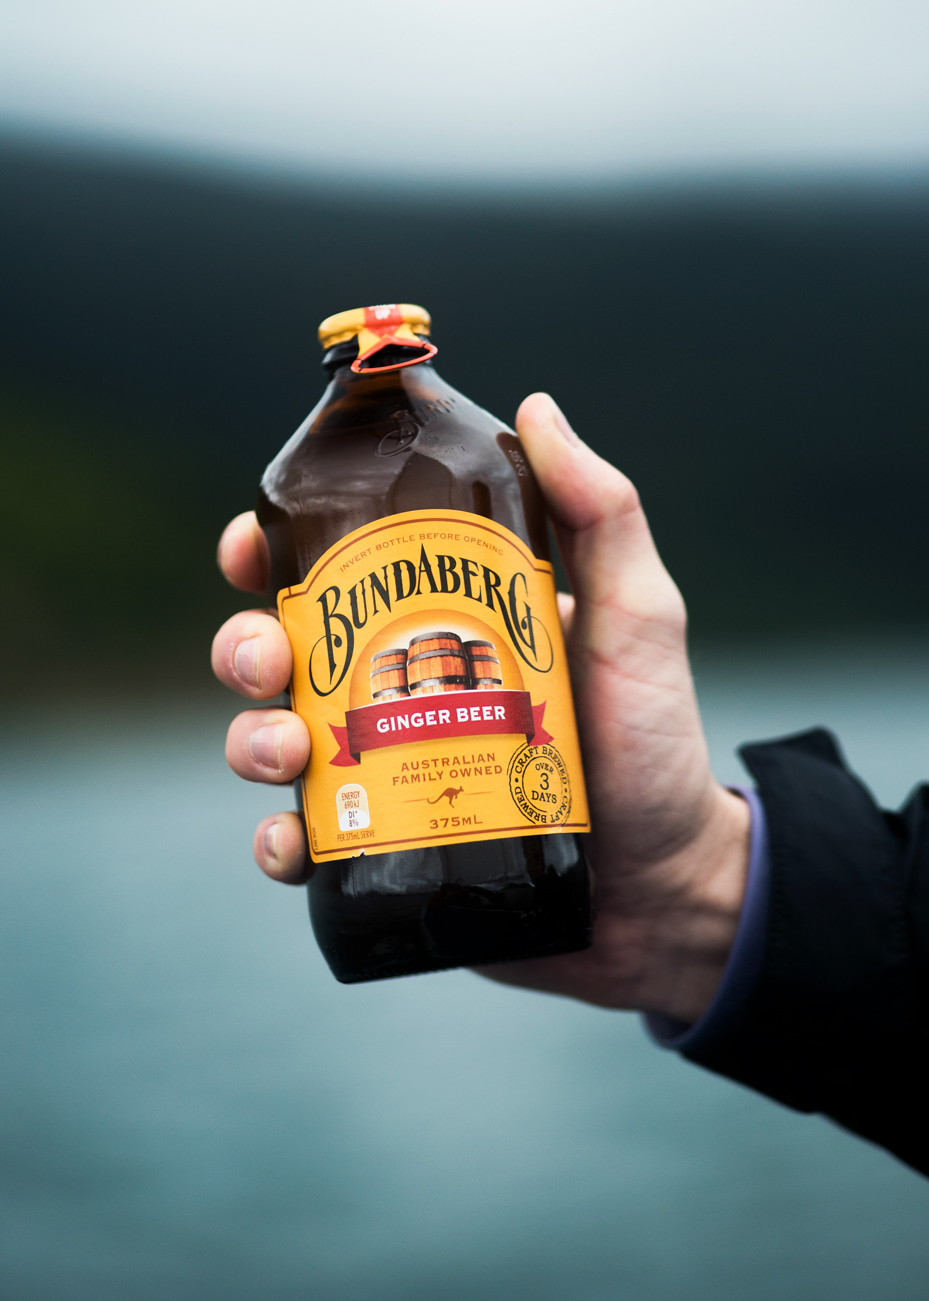 bundaberg_cory_woodruff_product_photography_new_zealand_marlborough_sounds_web.jpg